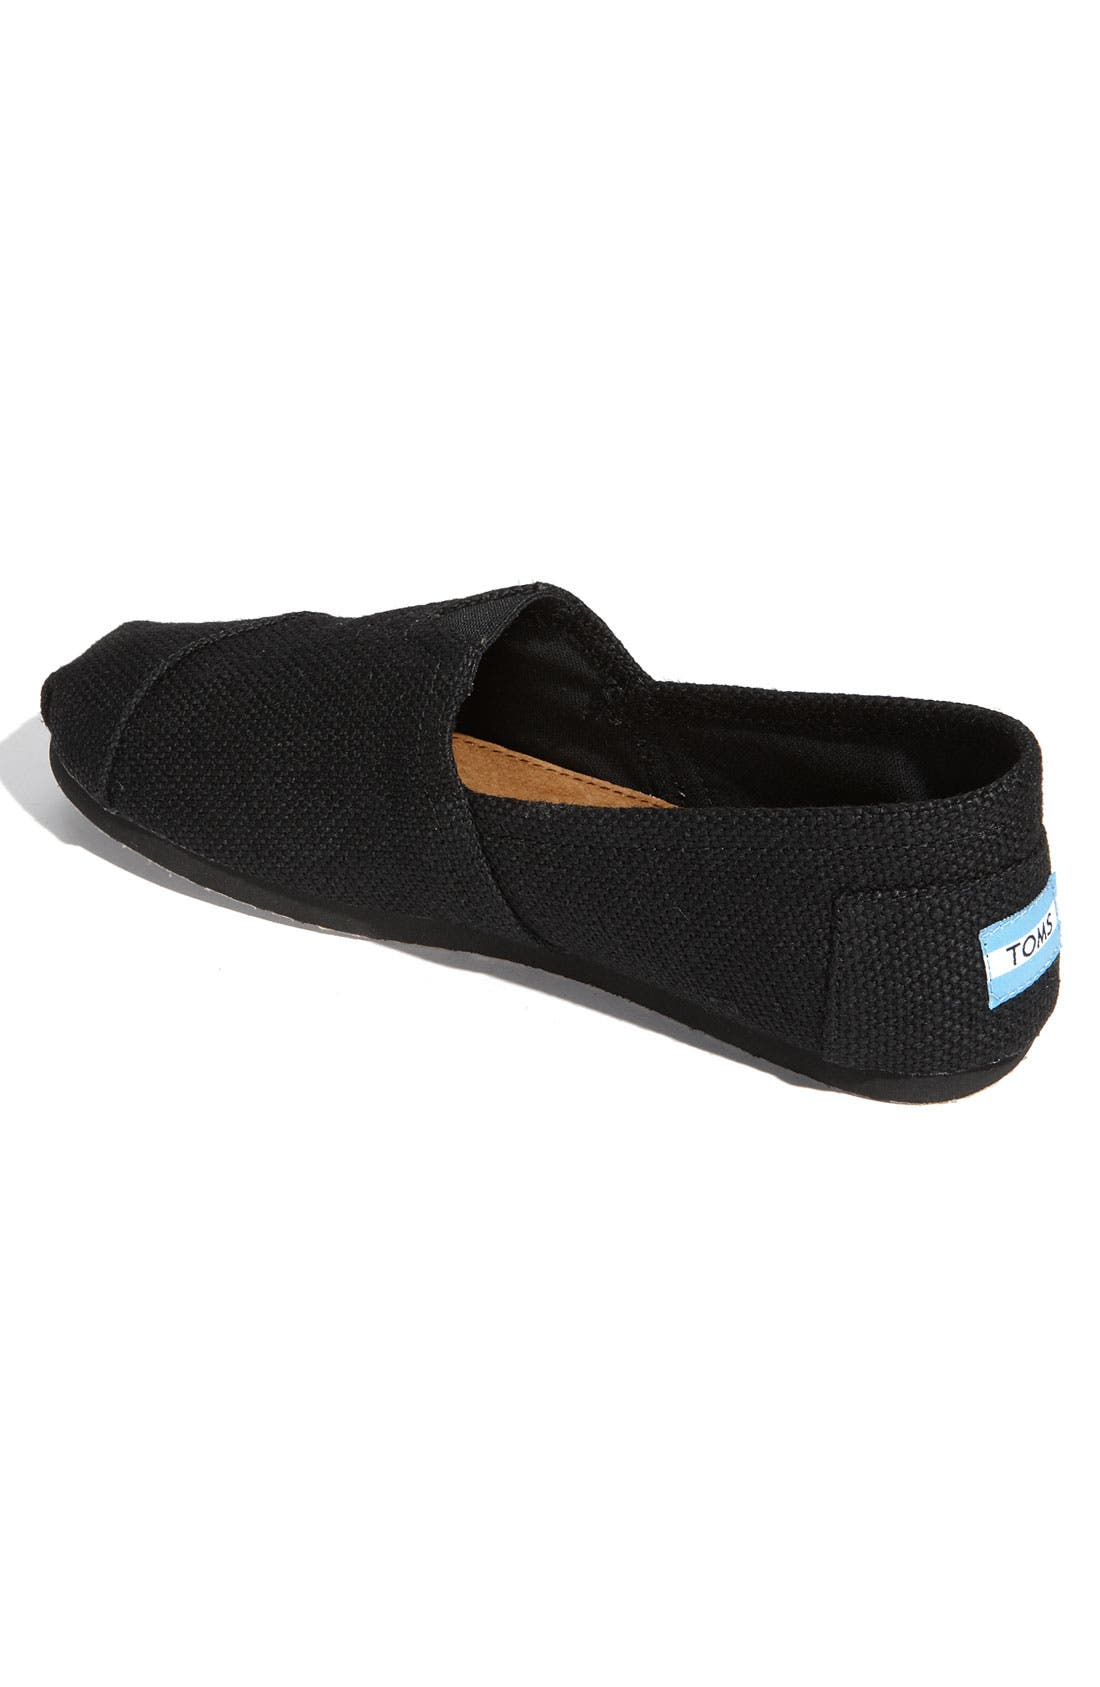 Alternate Image 2  - TOMS 'Classic' Burlap Slip-On   (Men)